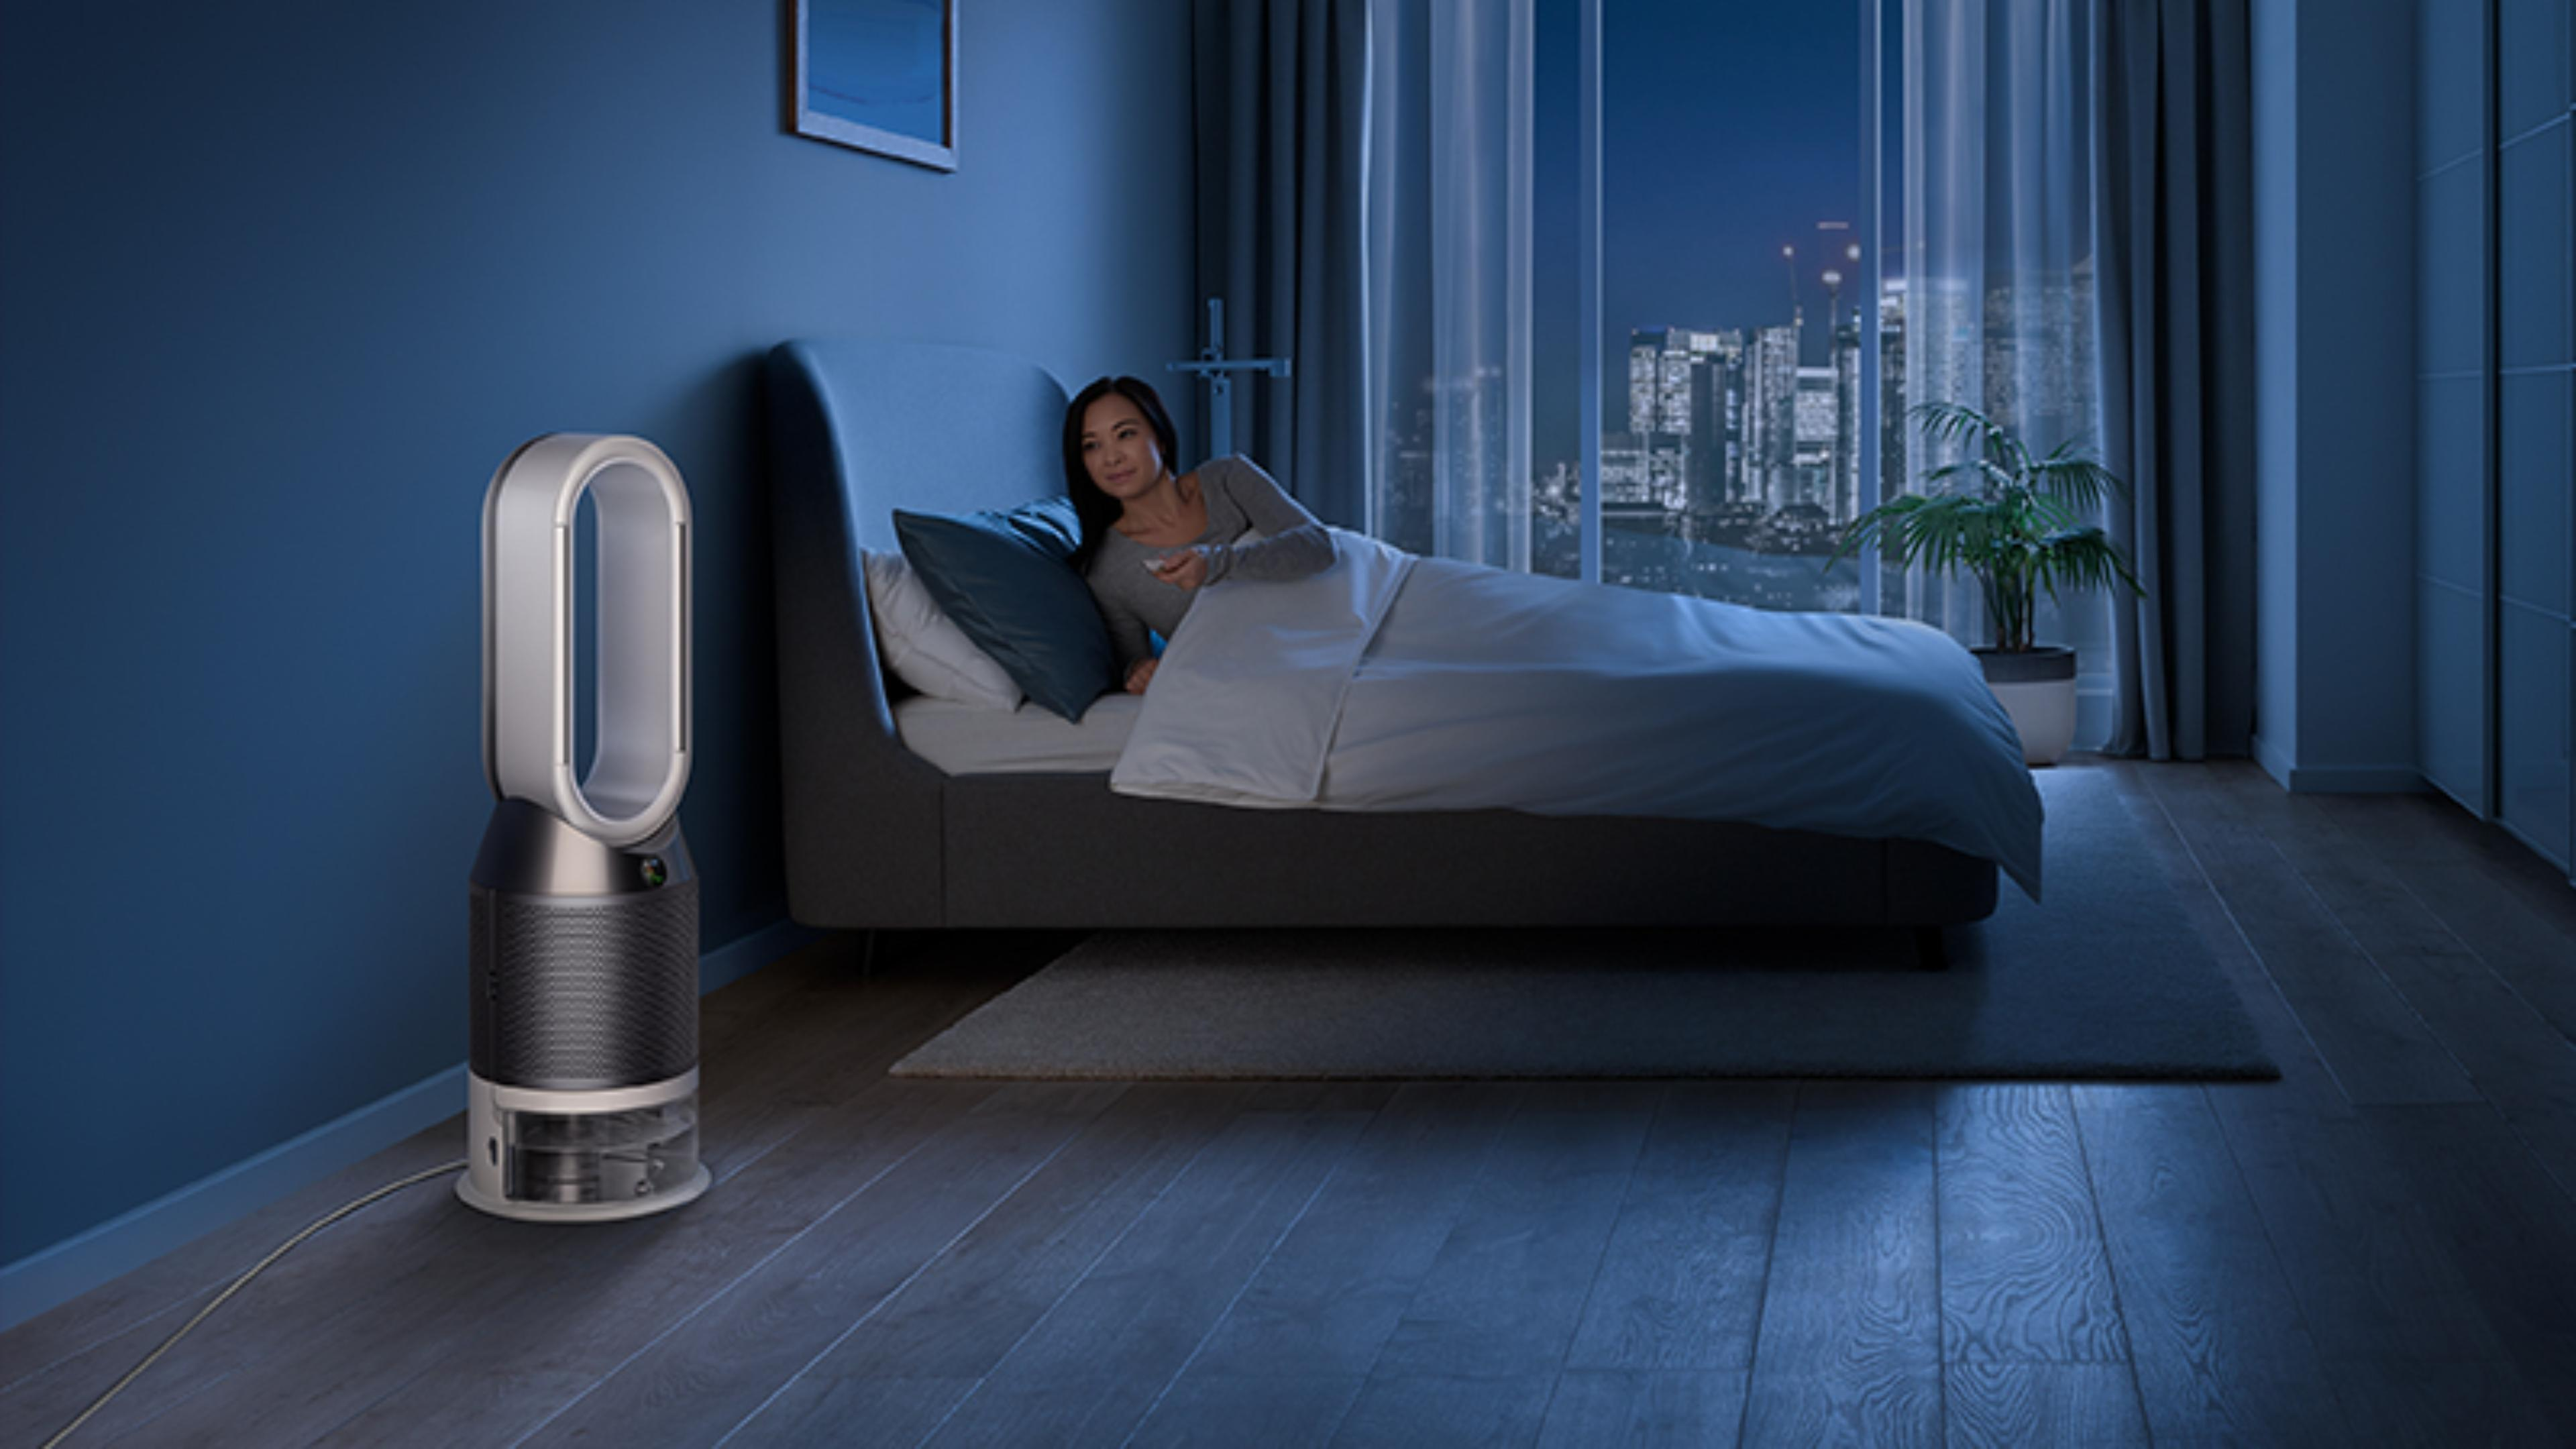 Dyson purifier humidifier in Night mode